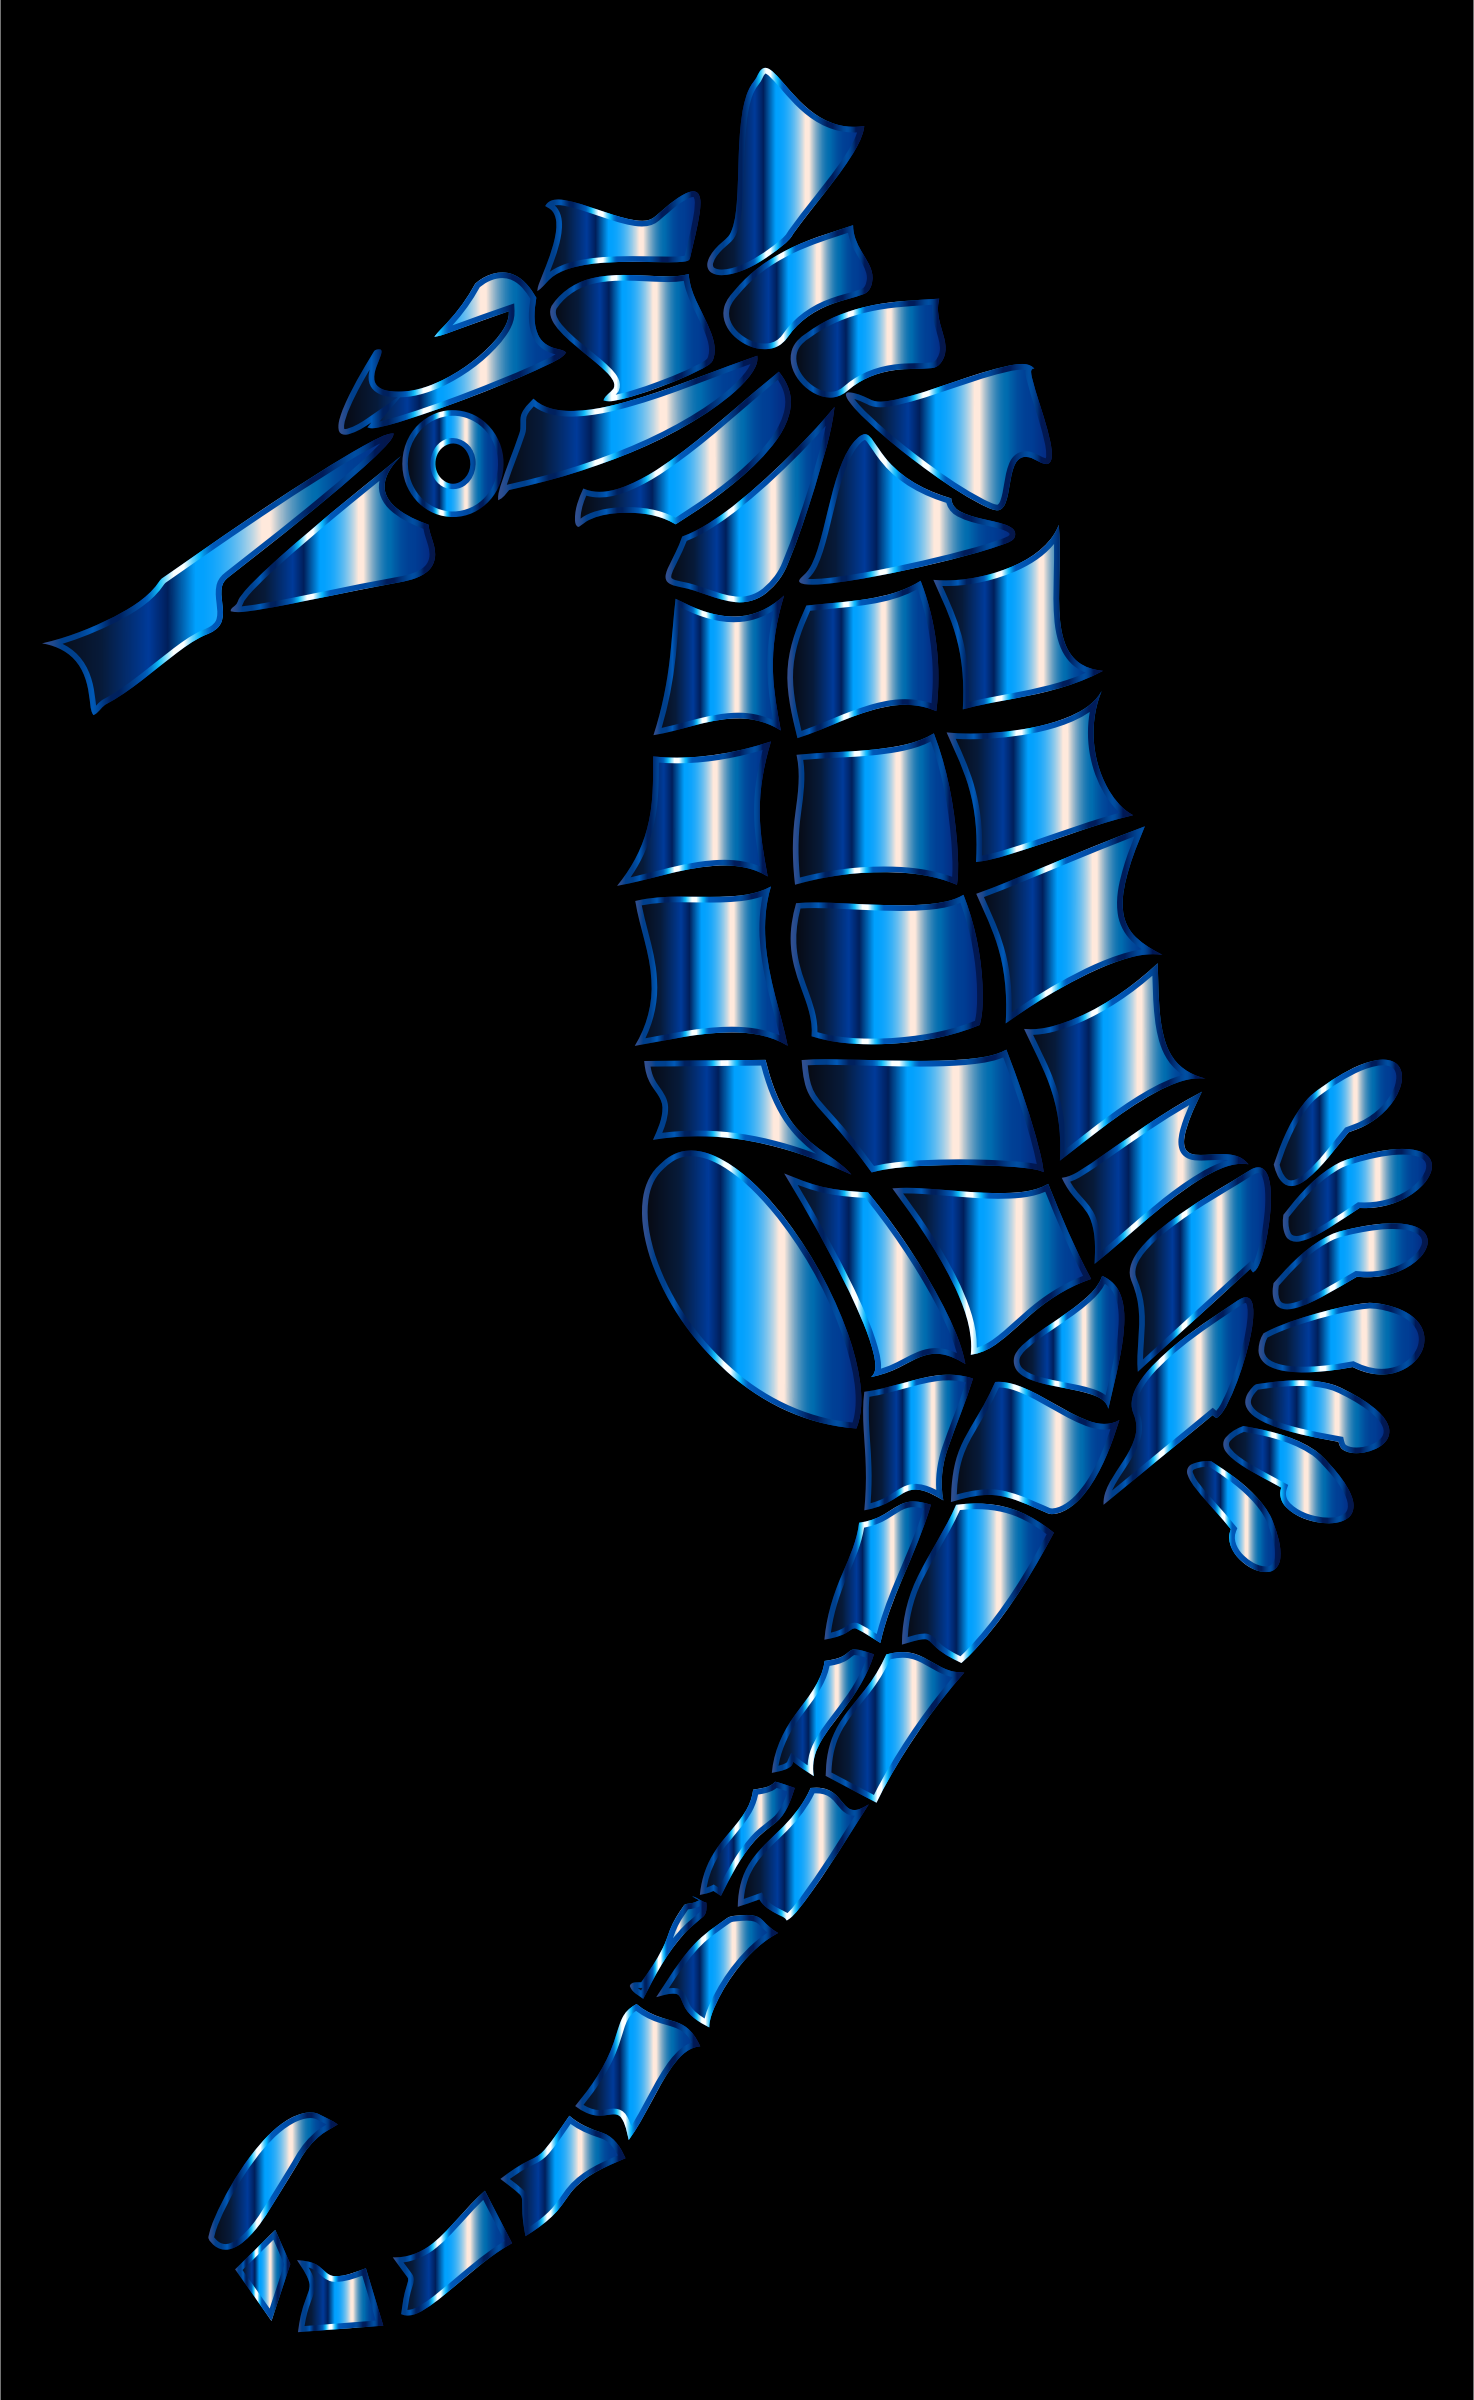 Cerulean Stylized Seahorse Silhouette by GDJ